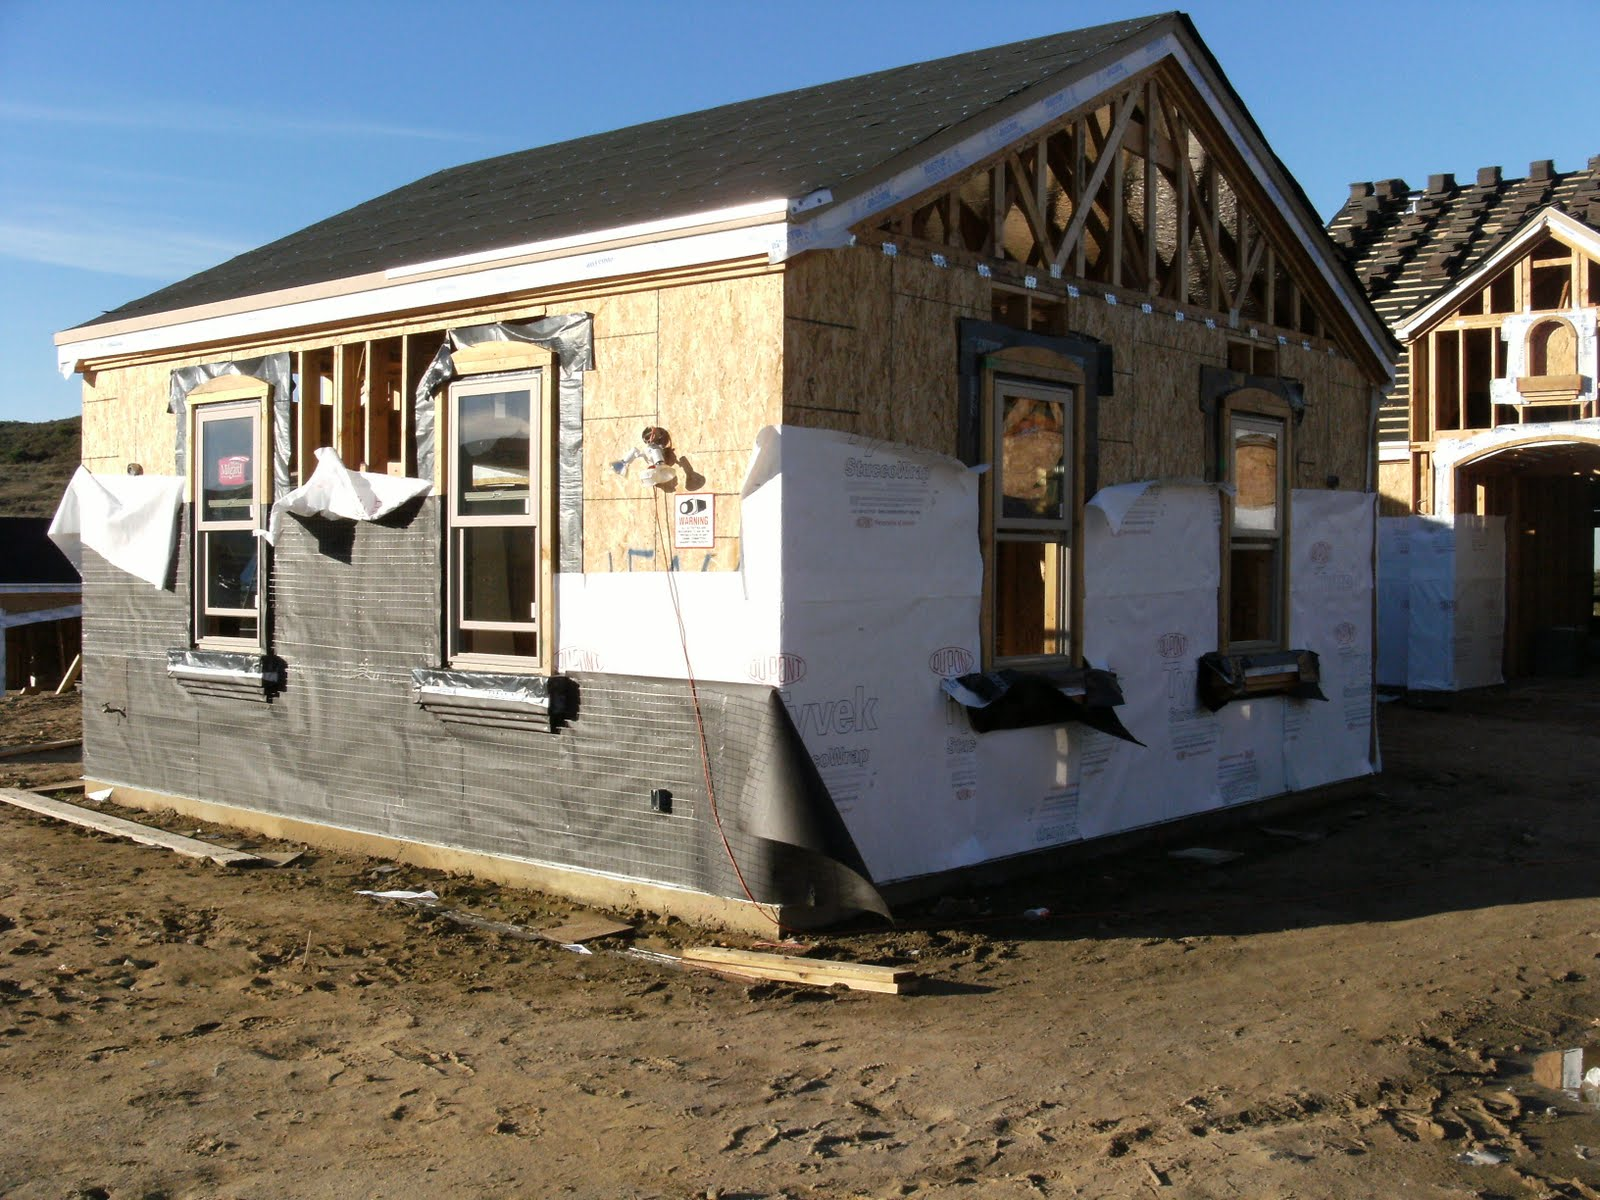 Tyvek House Wrap 28 Images Pin Tyvek House Wrap On